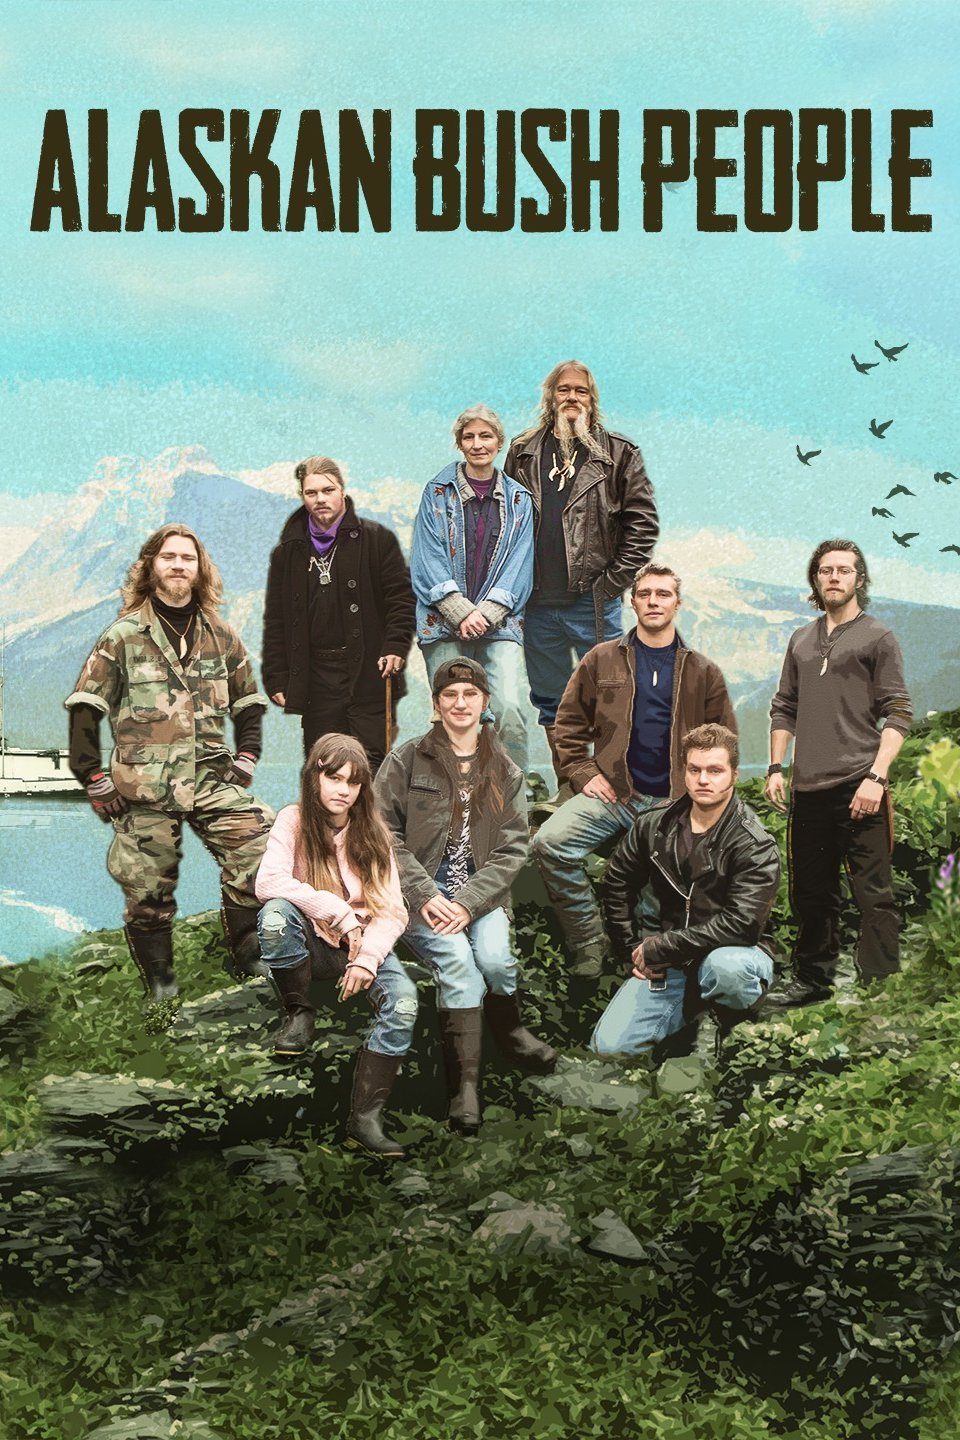 Watch Alaskan Bush People Season 6, Episode 5 s6e5